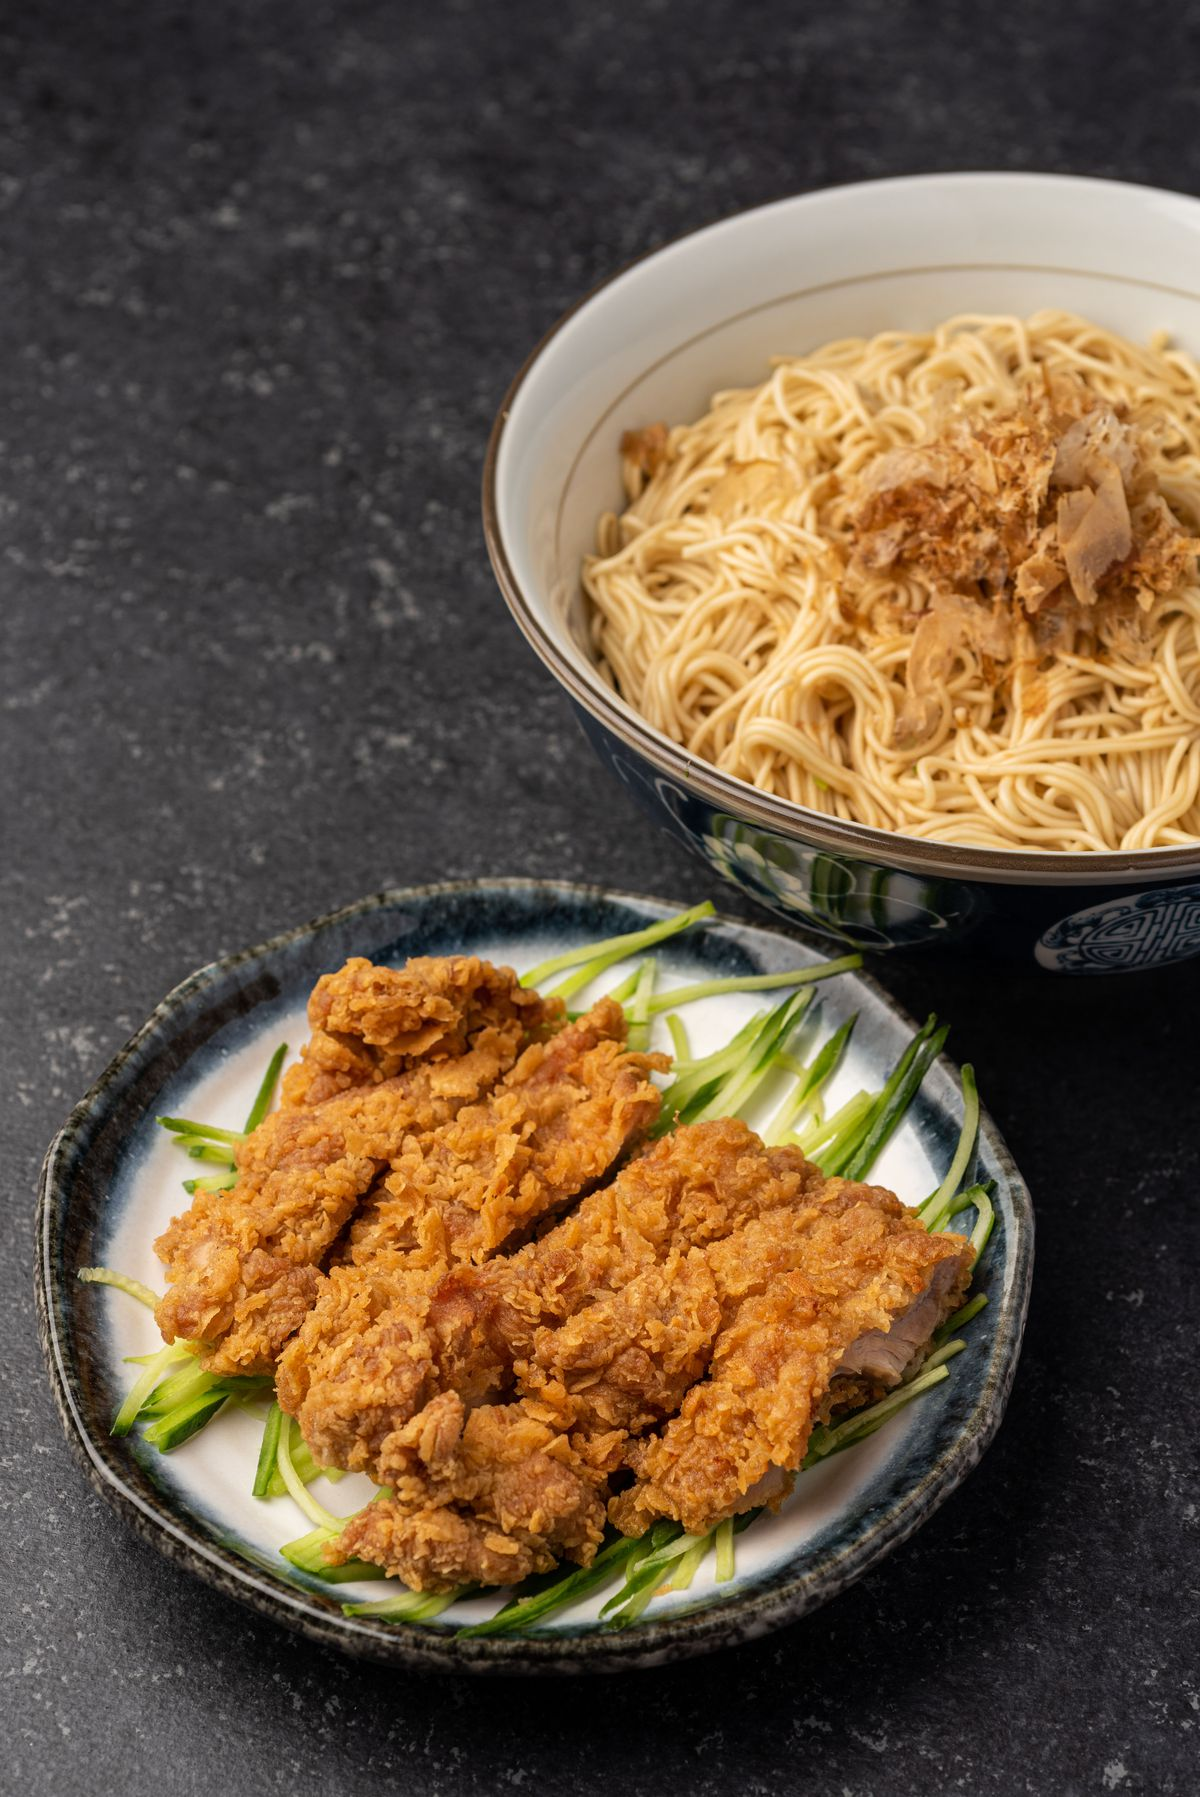 Fried chicken thighs on a table with a far bowl of noodles.